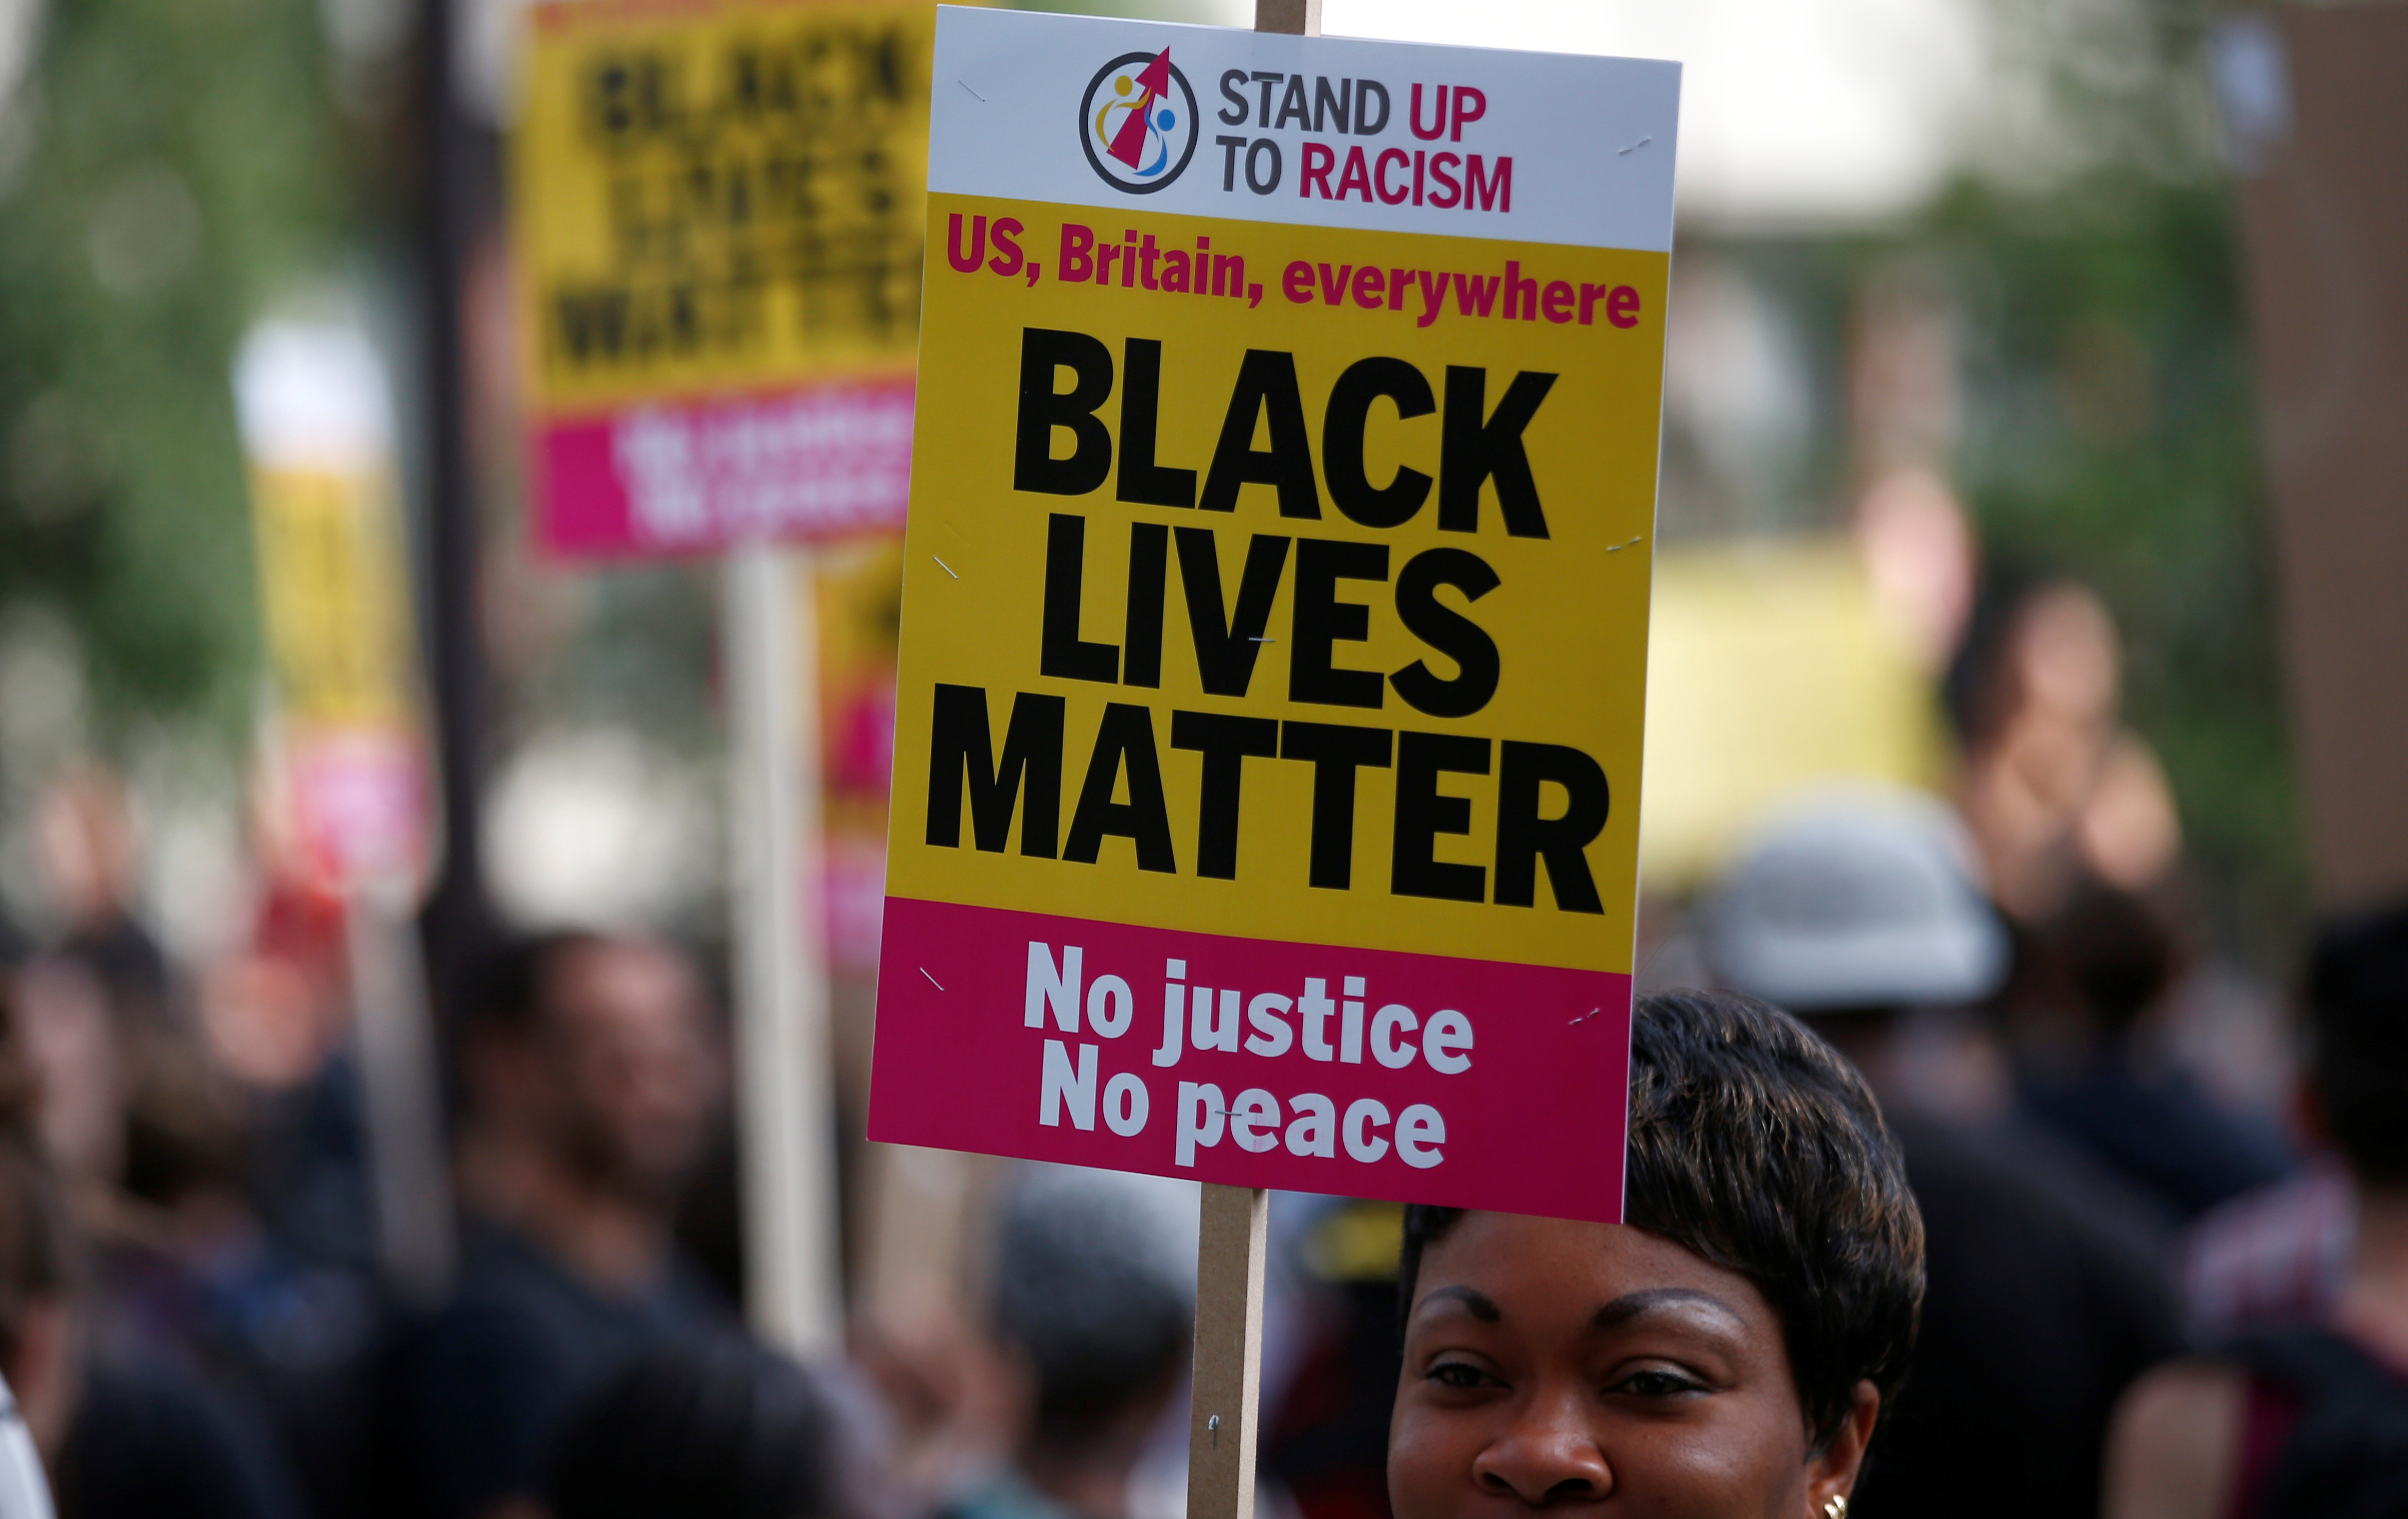 A supporter of Black Lives Matter at a protest in London.